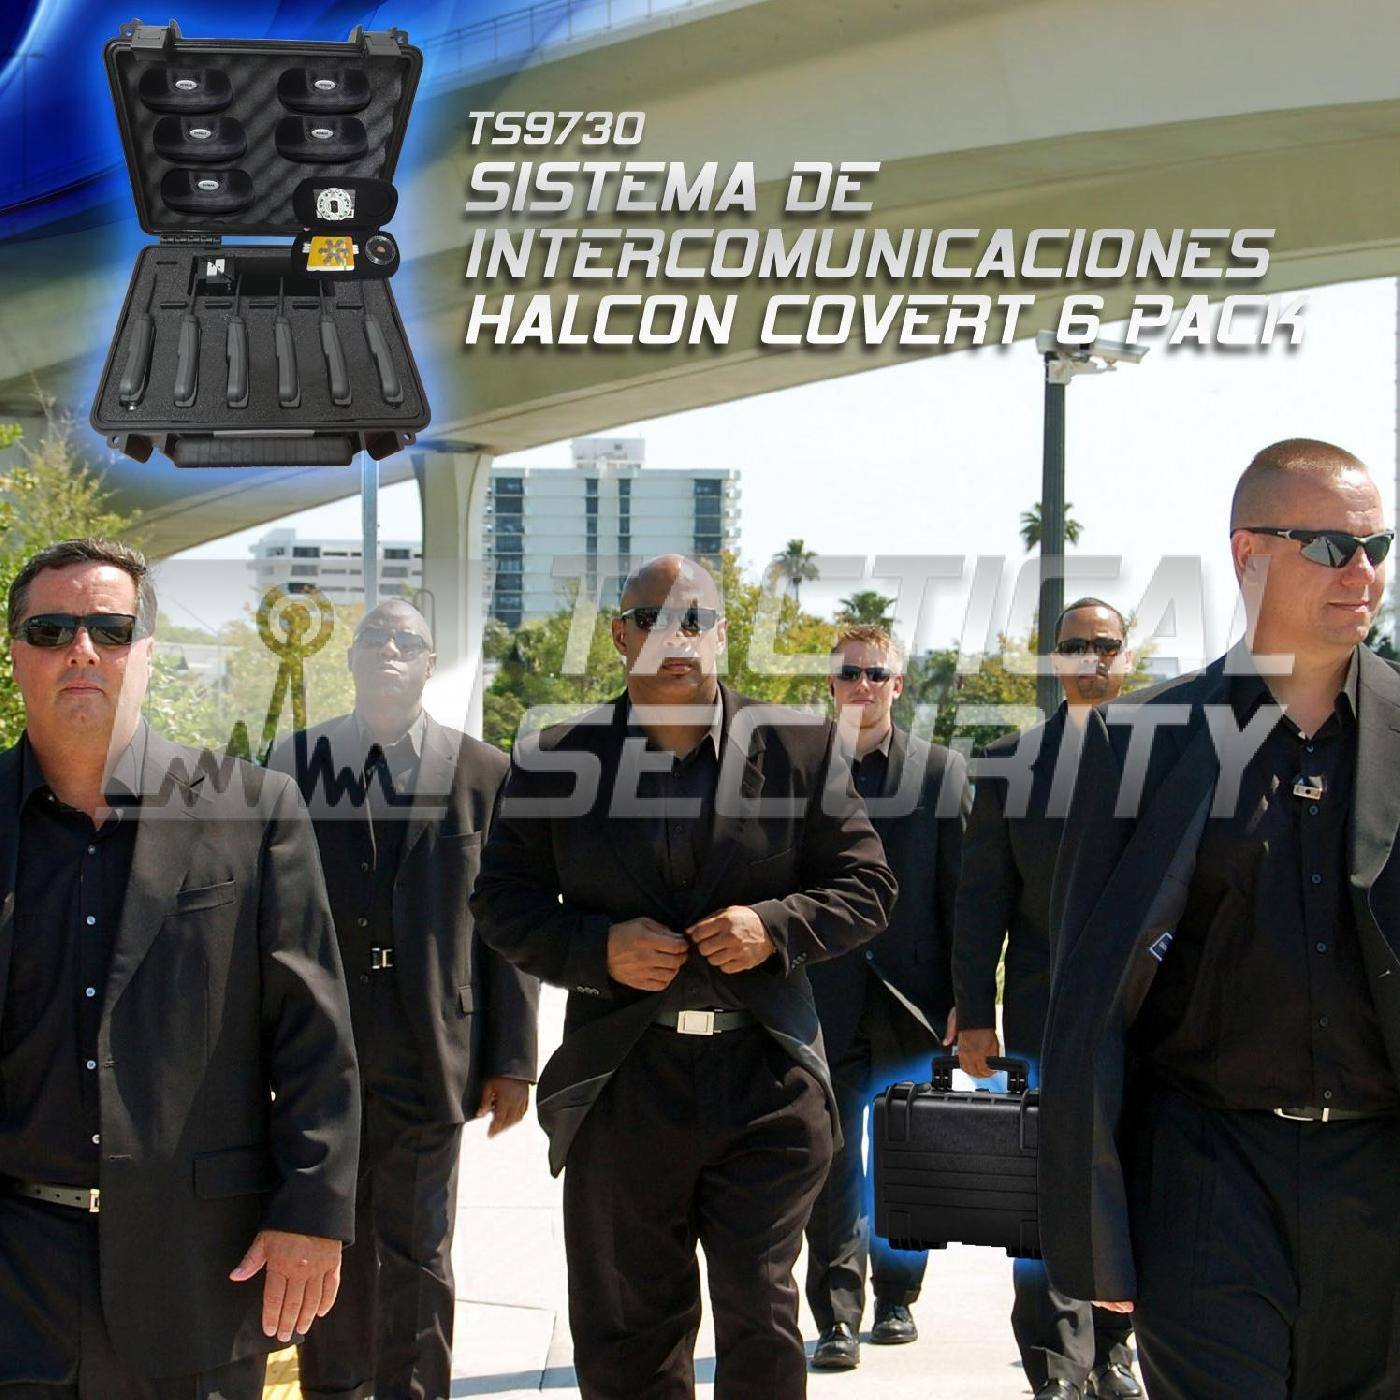 Sistema de Intercomunicación Halcón Covert 6 Pack uso